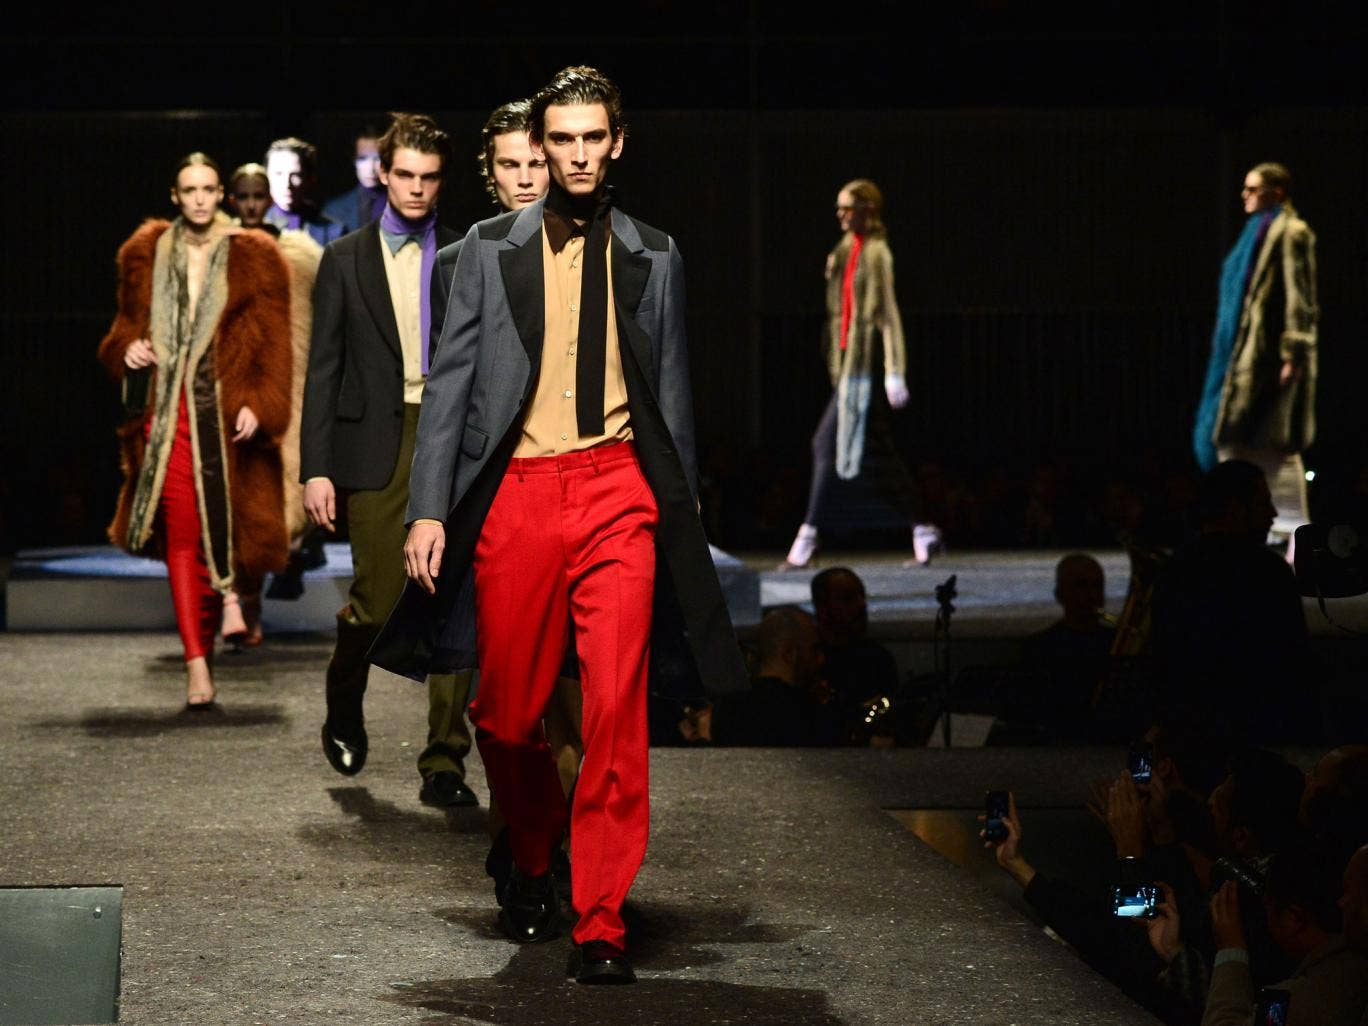 Prada's autumn/winter show in Milan hinted at decadence